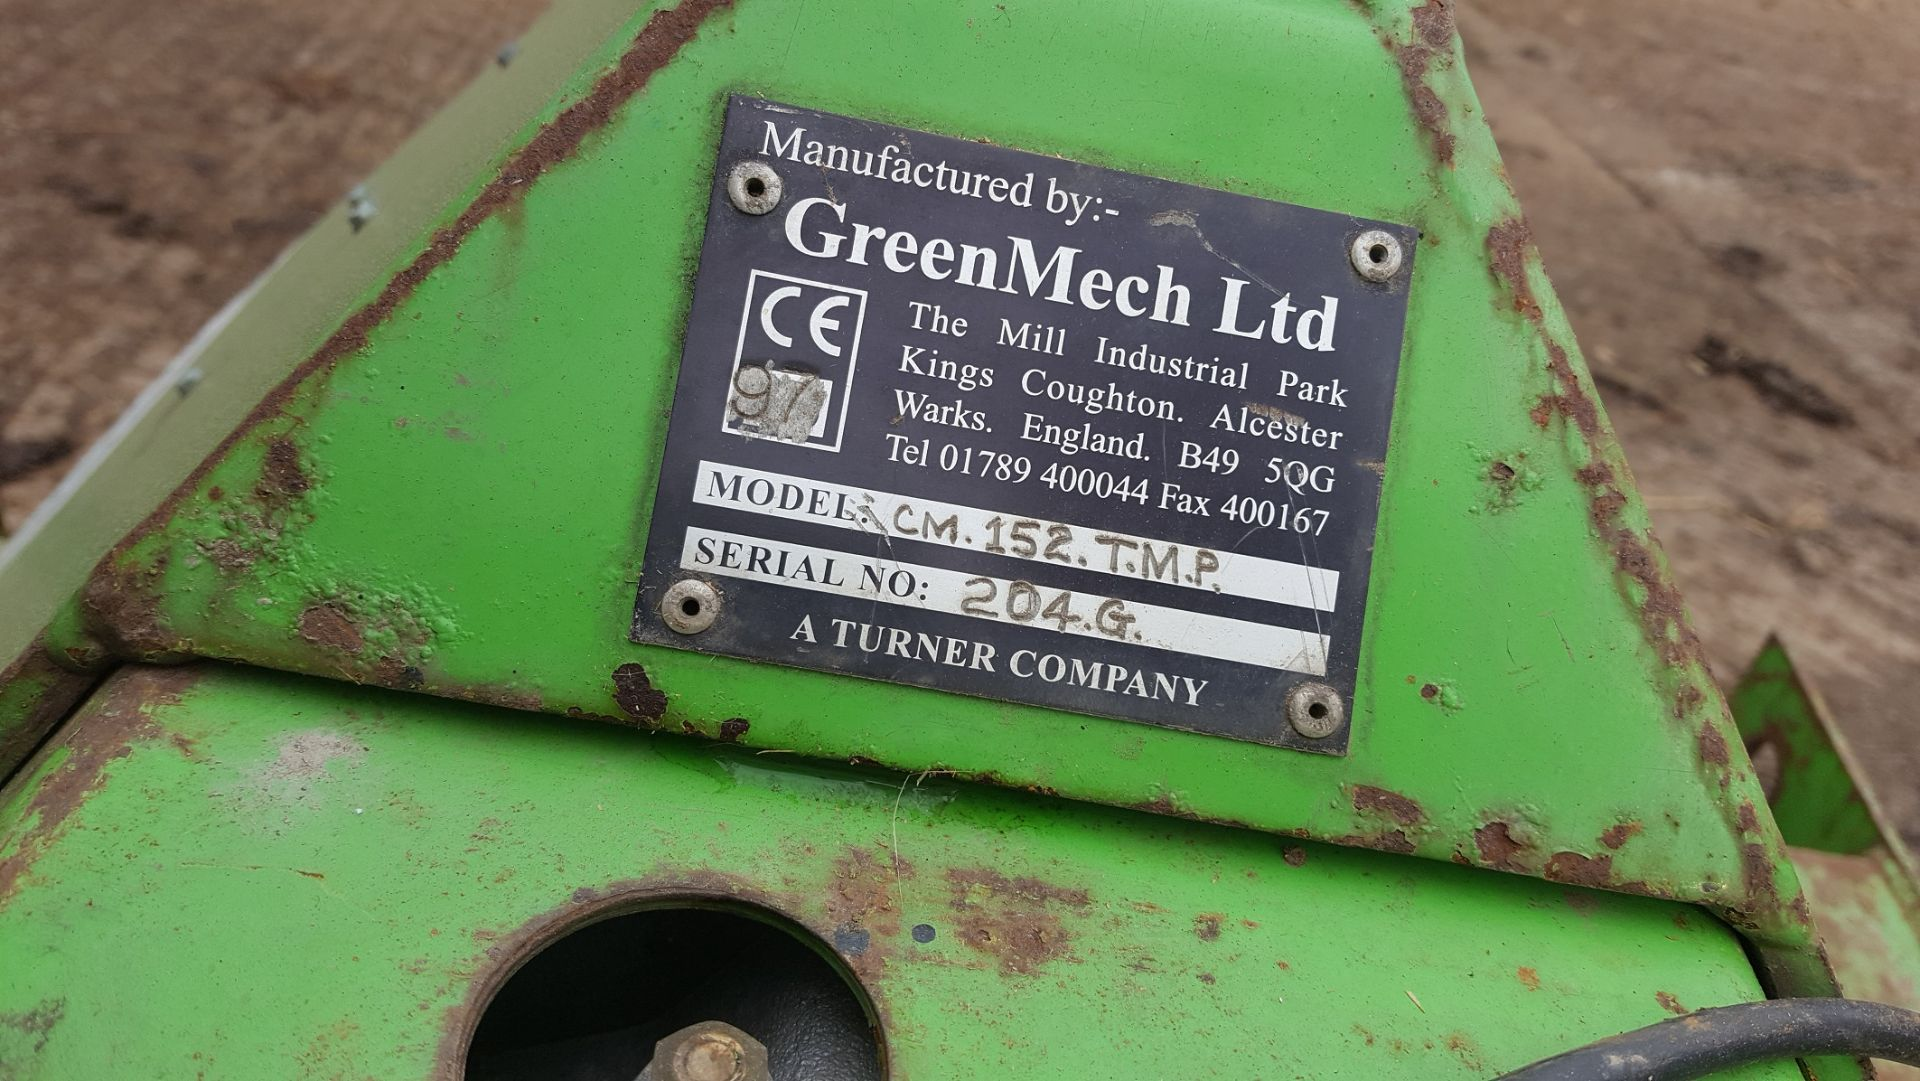 GREENMECH CHIPMASTER 150 SERIES, MODEL: CM152 TMP *PLUS VAT* - Image 4 of 5